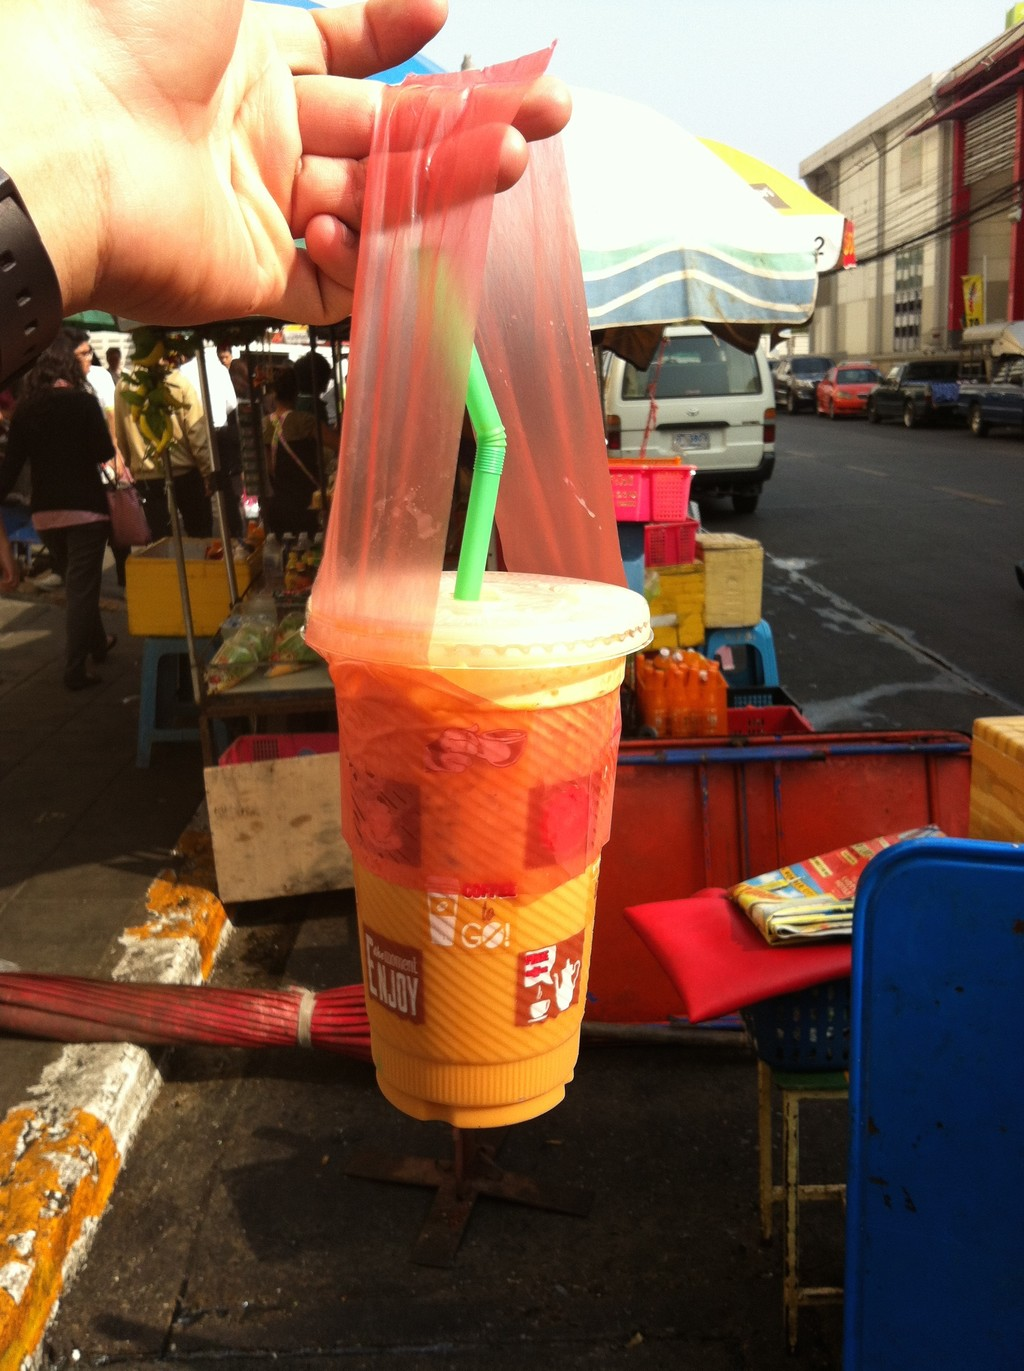 bangkok-street-drinks-for-instant-cooling-down-670d93b5499463d6c196ead4388019d1.jpg